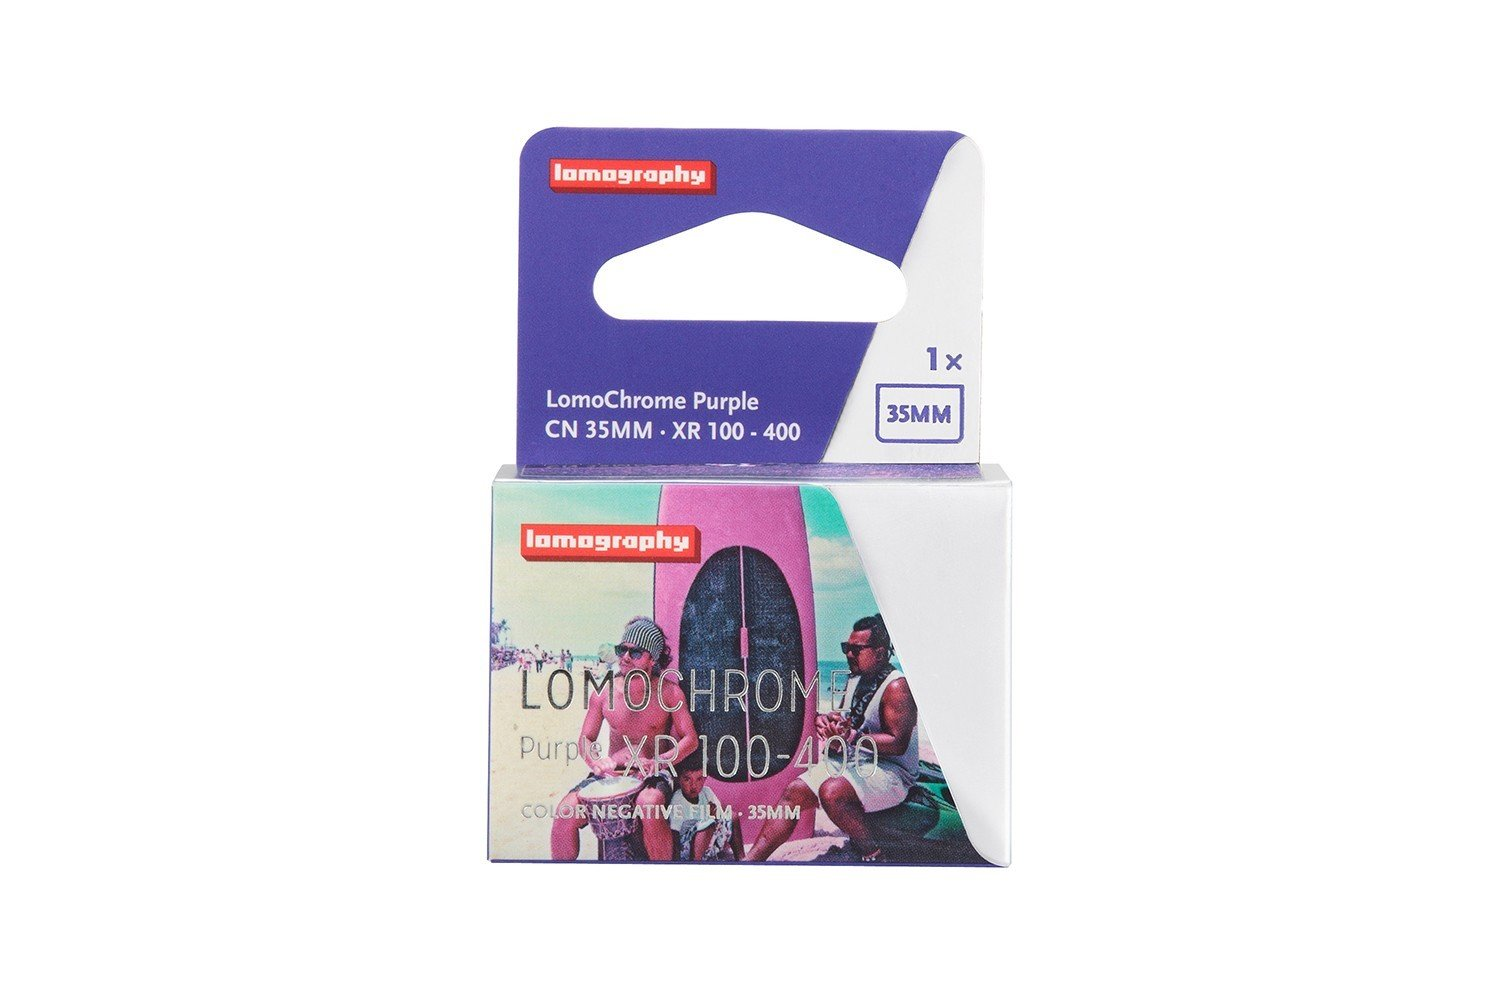 Lomography LomoChrome Purple XR 100-400 35mm NEW!